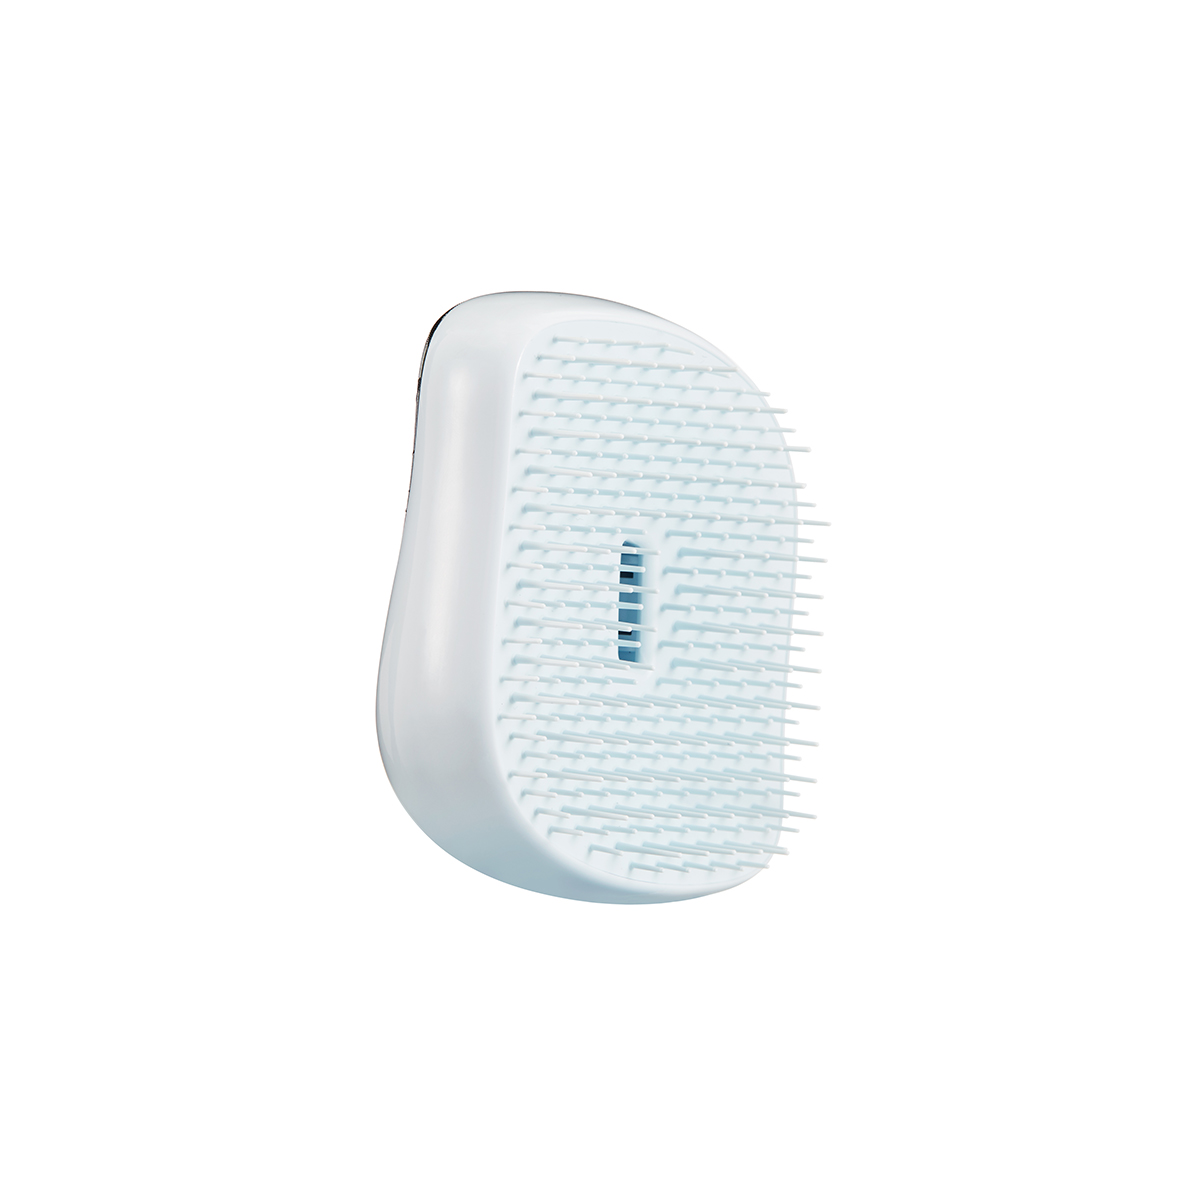 Расческа Tangle Teezer Compact Styler Smashed Holo Blue